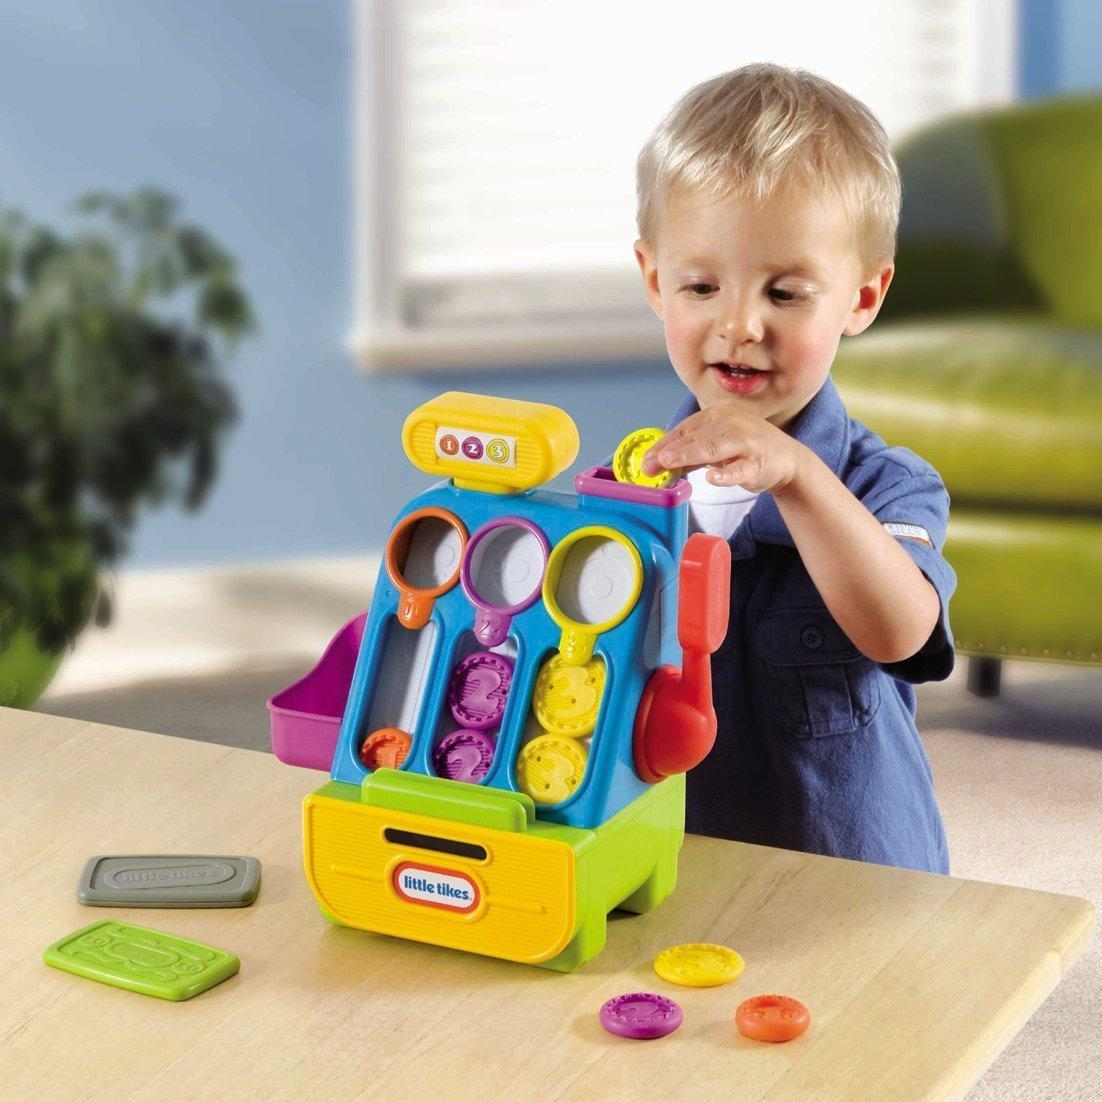 $10.88 #1 Best Seller, Little Tikes Count 'n Play Cash Register